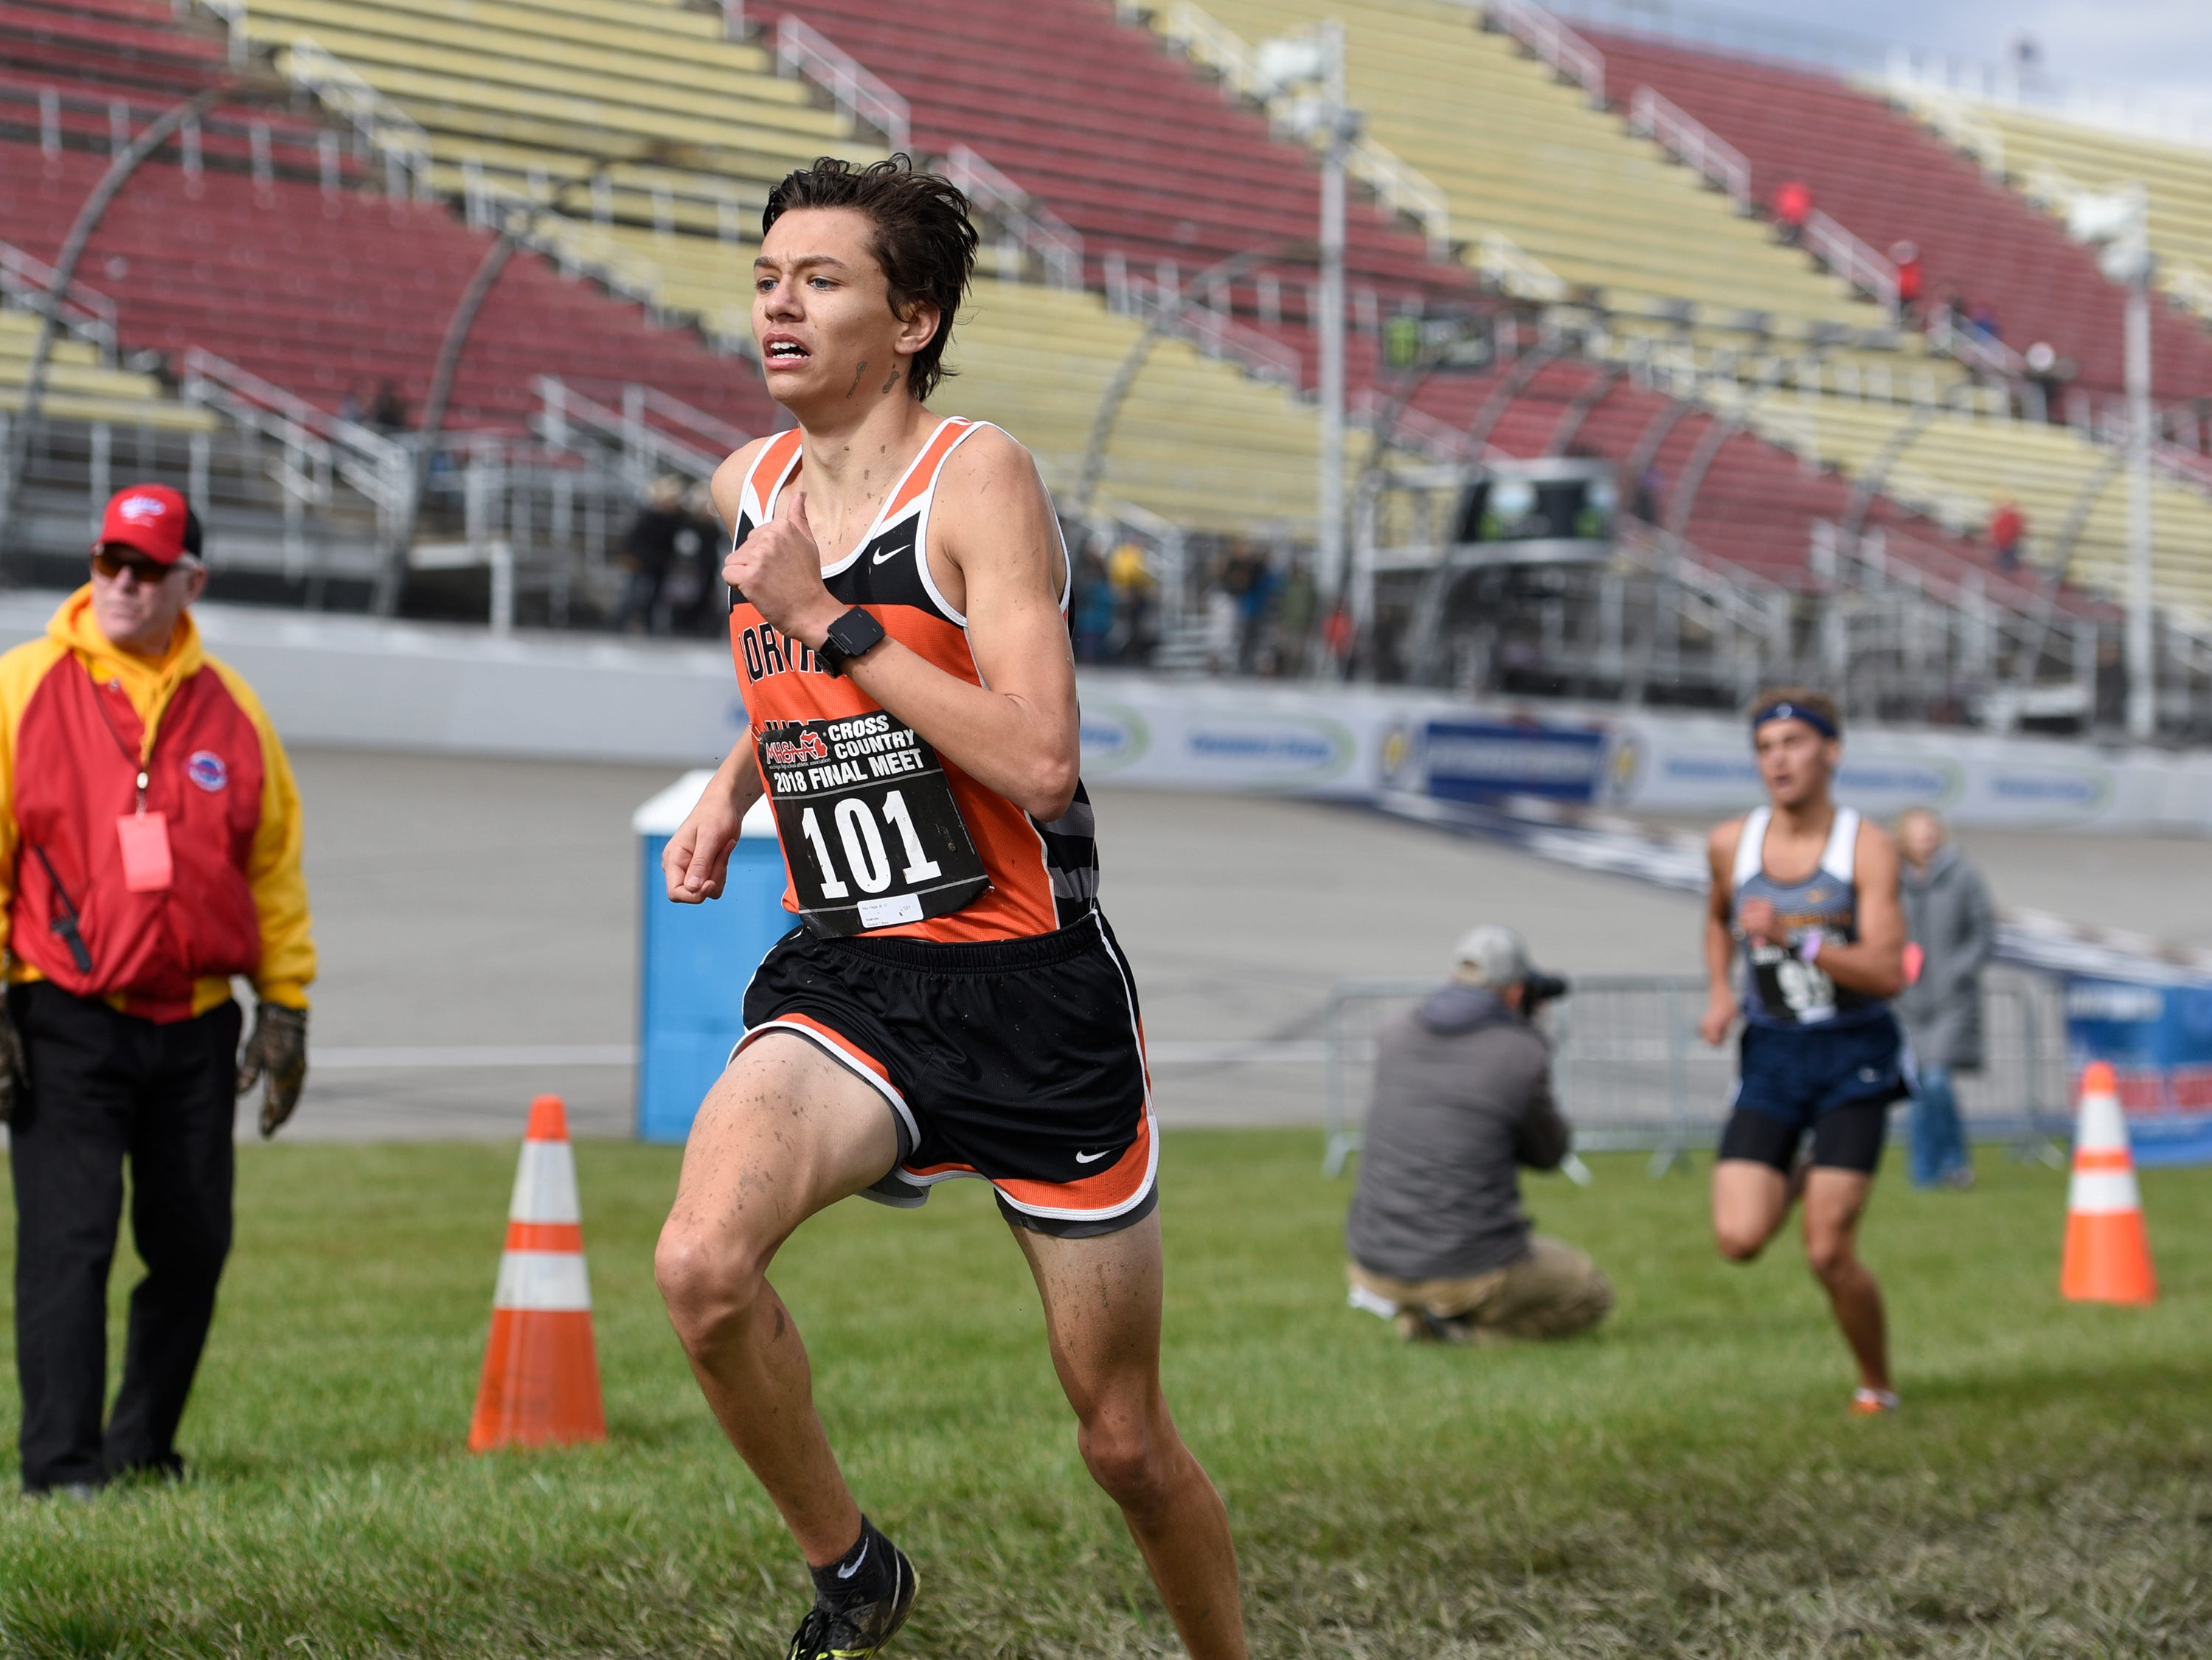 Northville's Alex Flegal durng the Division 1 2018 cross country finals at Michigan International Speedway.